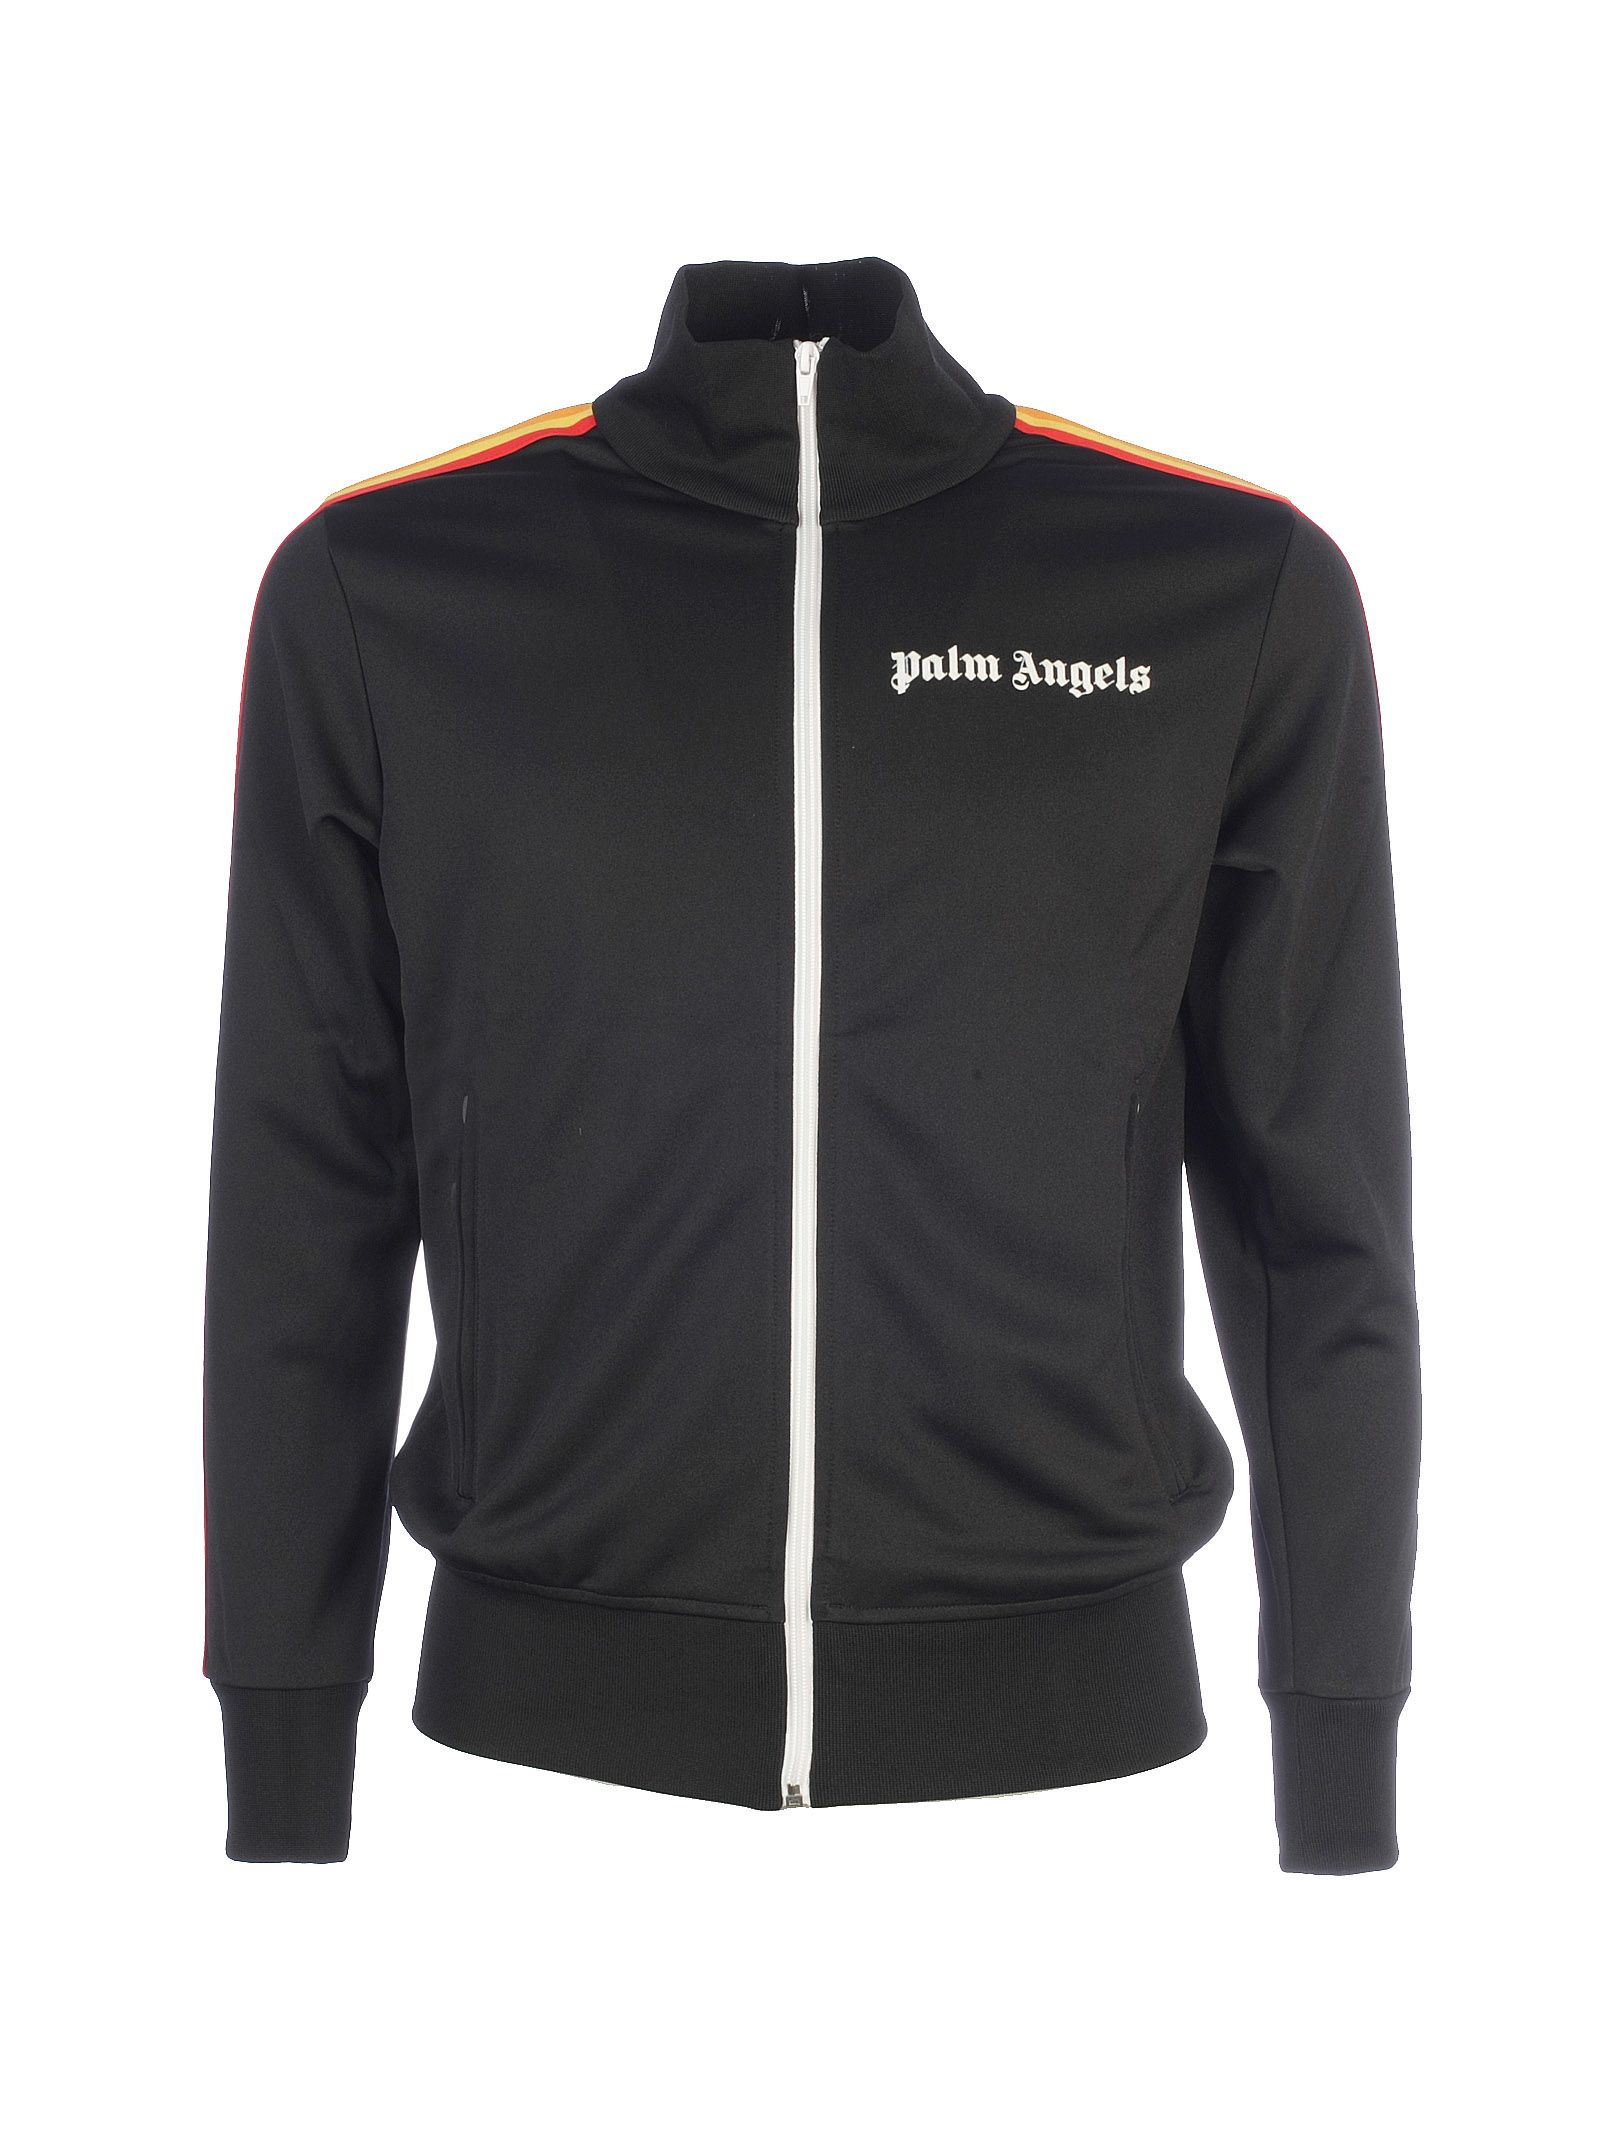 PALM ANGELS SIDE STRIPED BOMBER